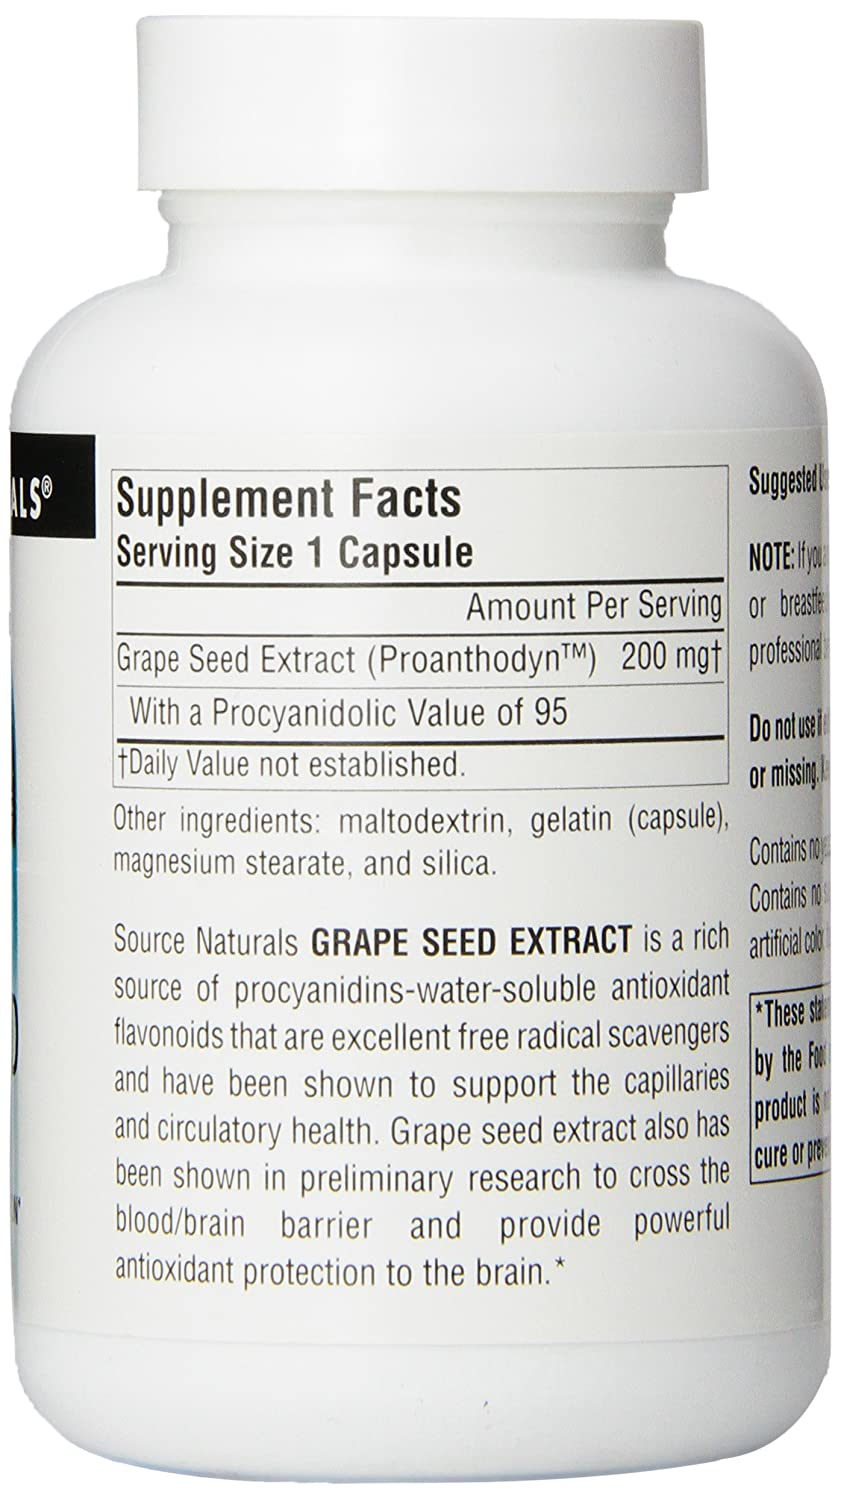 Source Naturals Grape Seed Extract, Proanthodyn 200 mg Antioxidant Protection Supports Healthy Aging Brain – 90 Capsules